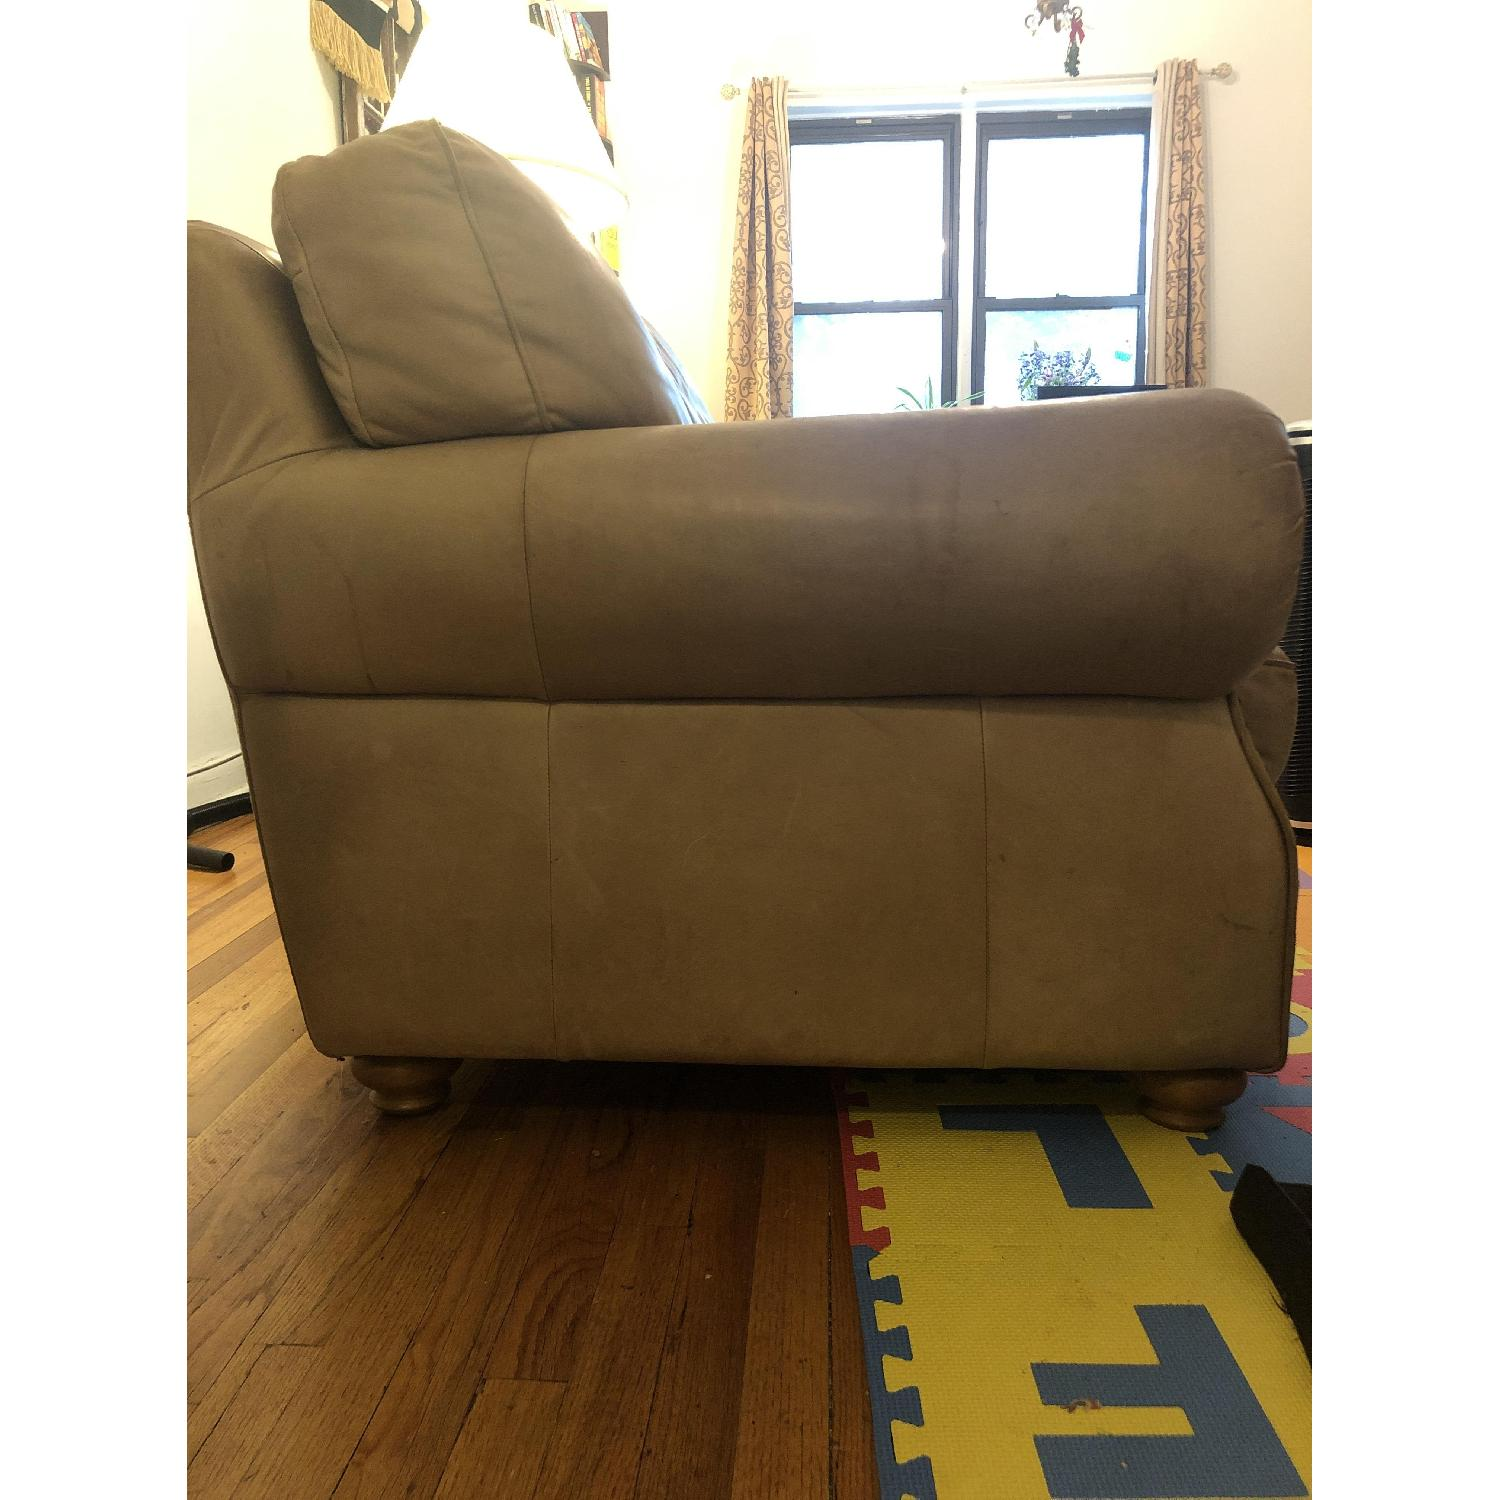 Distressed Camel Leather Studded Oversized Chair - image-3